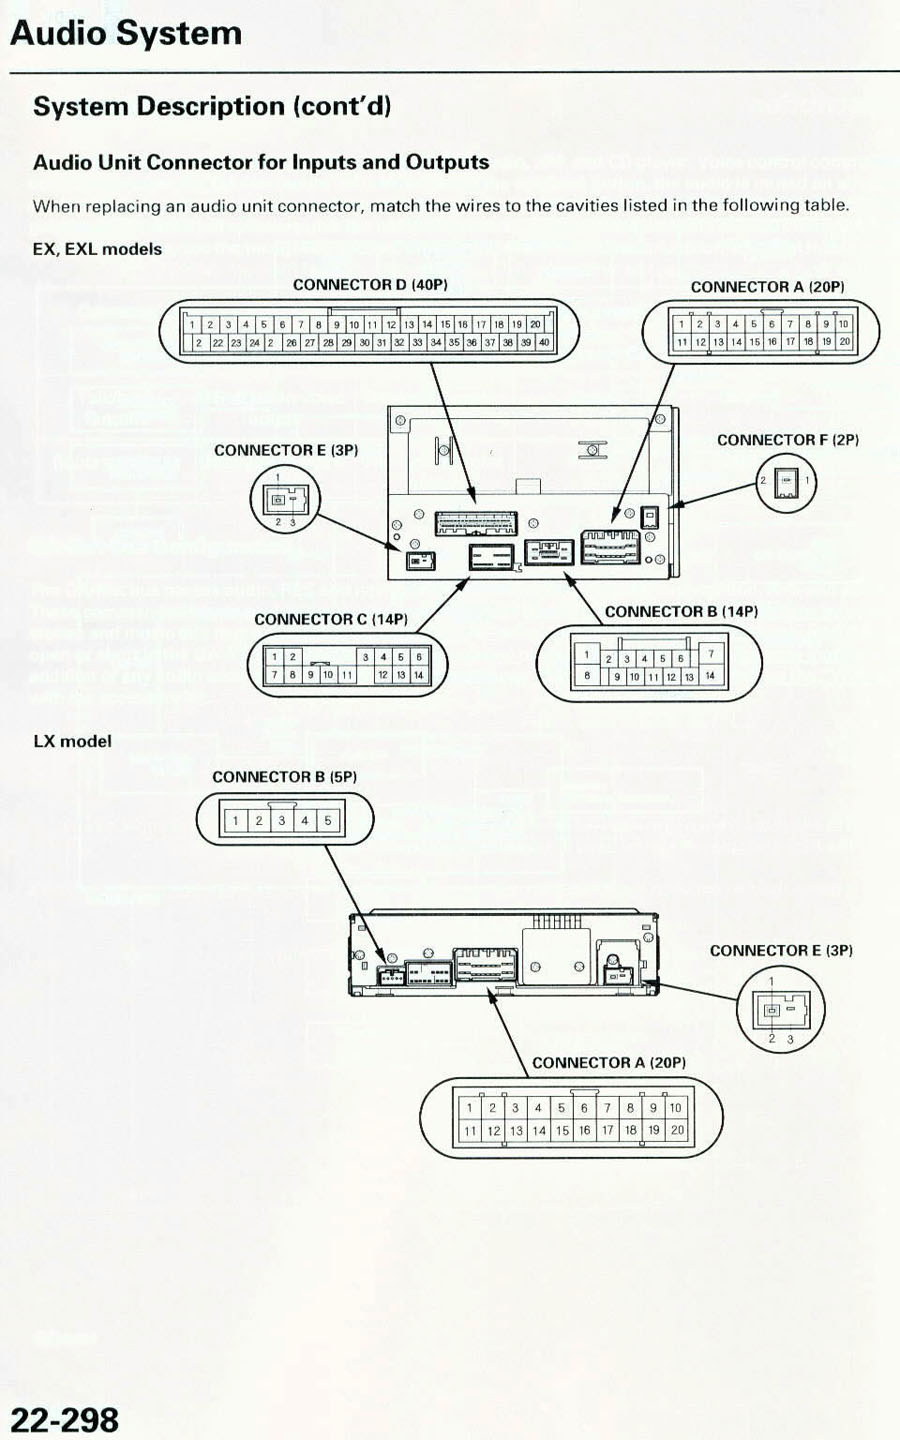 32969d1200063279 re factory subwoofer aftermarket hu audio_connector 2006 re factory subwoofer and aftermarket hu honda pilot honda honda crv 2004 radio wiring diagram at gsmx.co